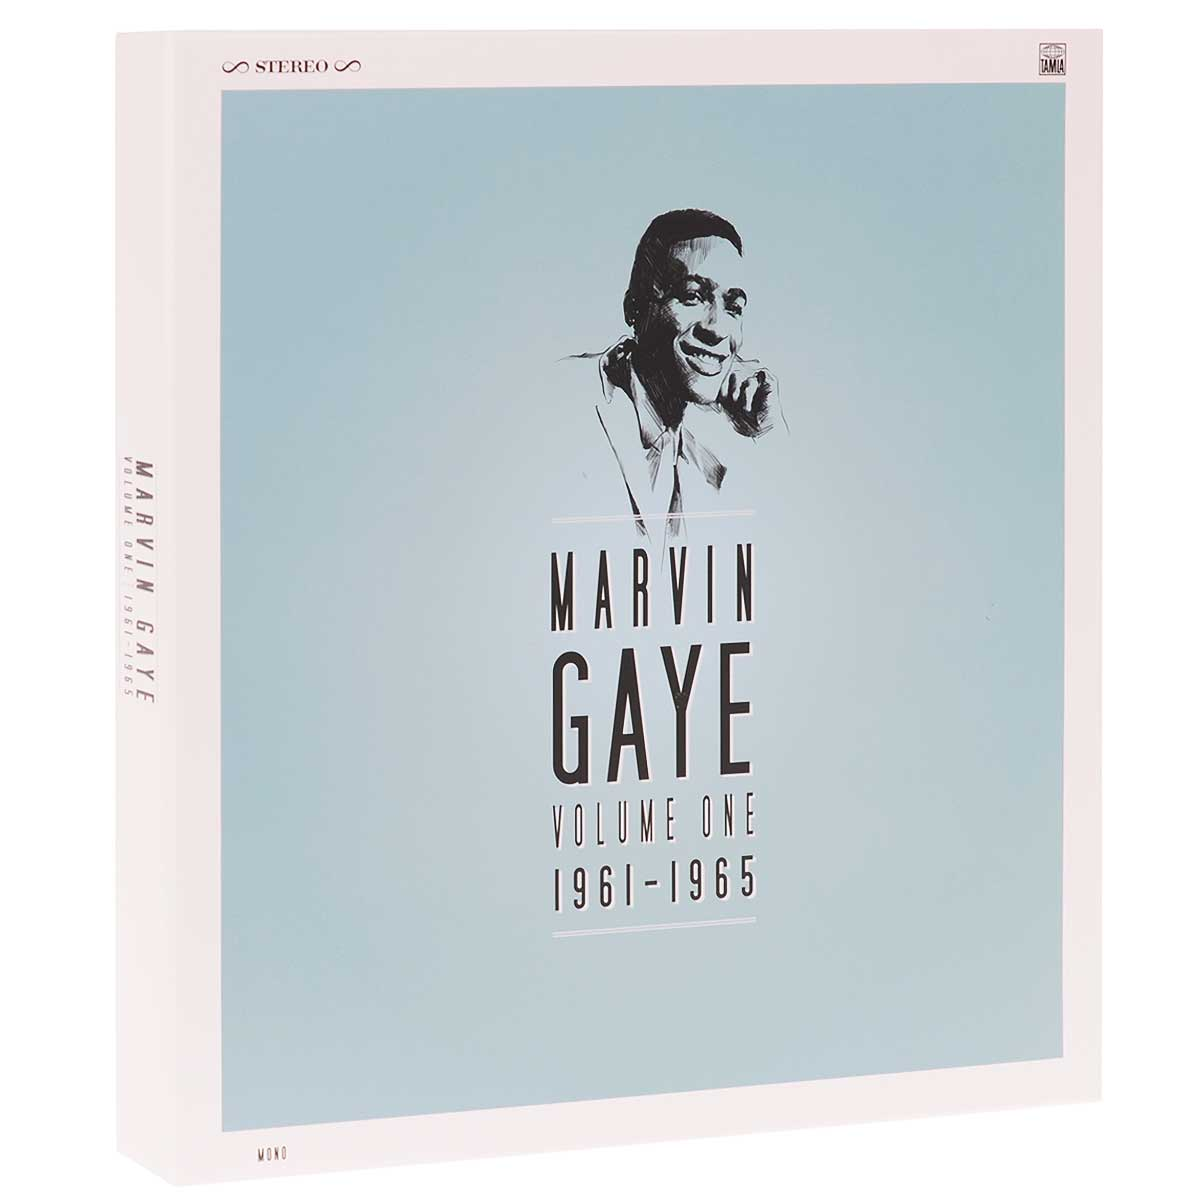 Марвин Гэй Marvin Gaye. Volume Jne 1961 - 1965 (7 LP) marvin gaye marvin gaye a tribute to the great nat king cole